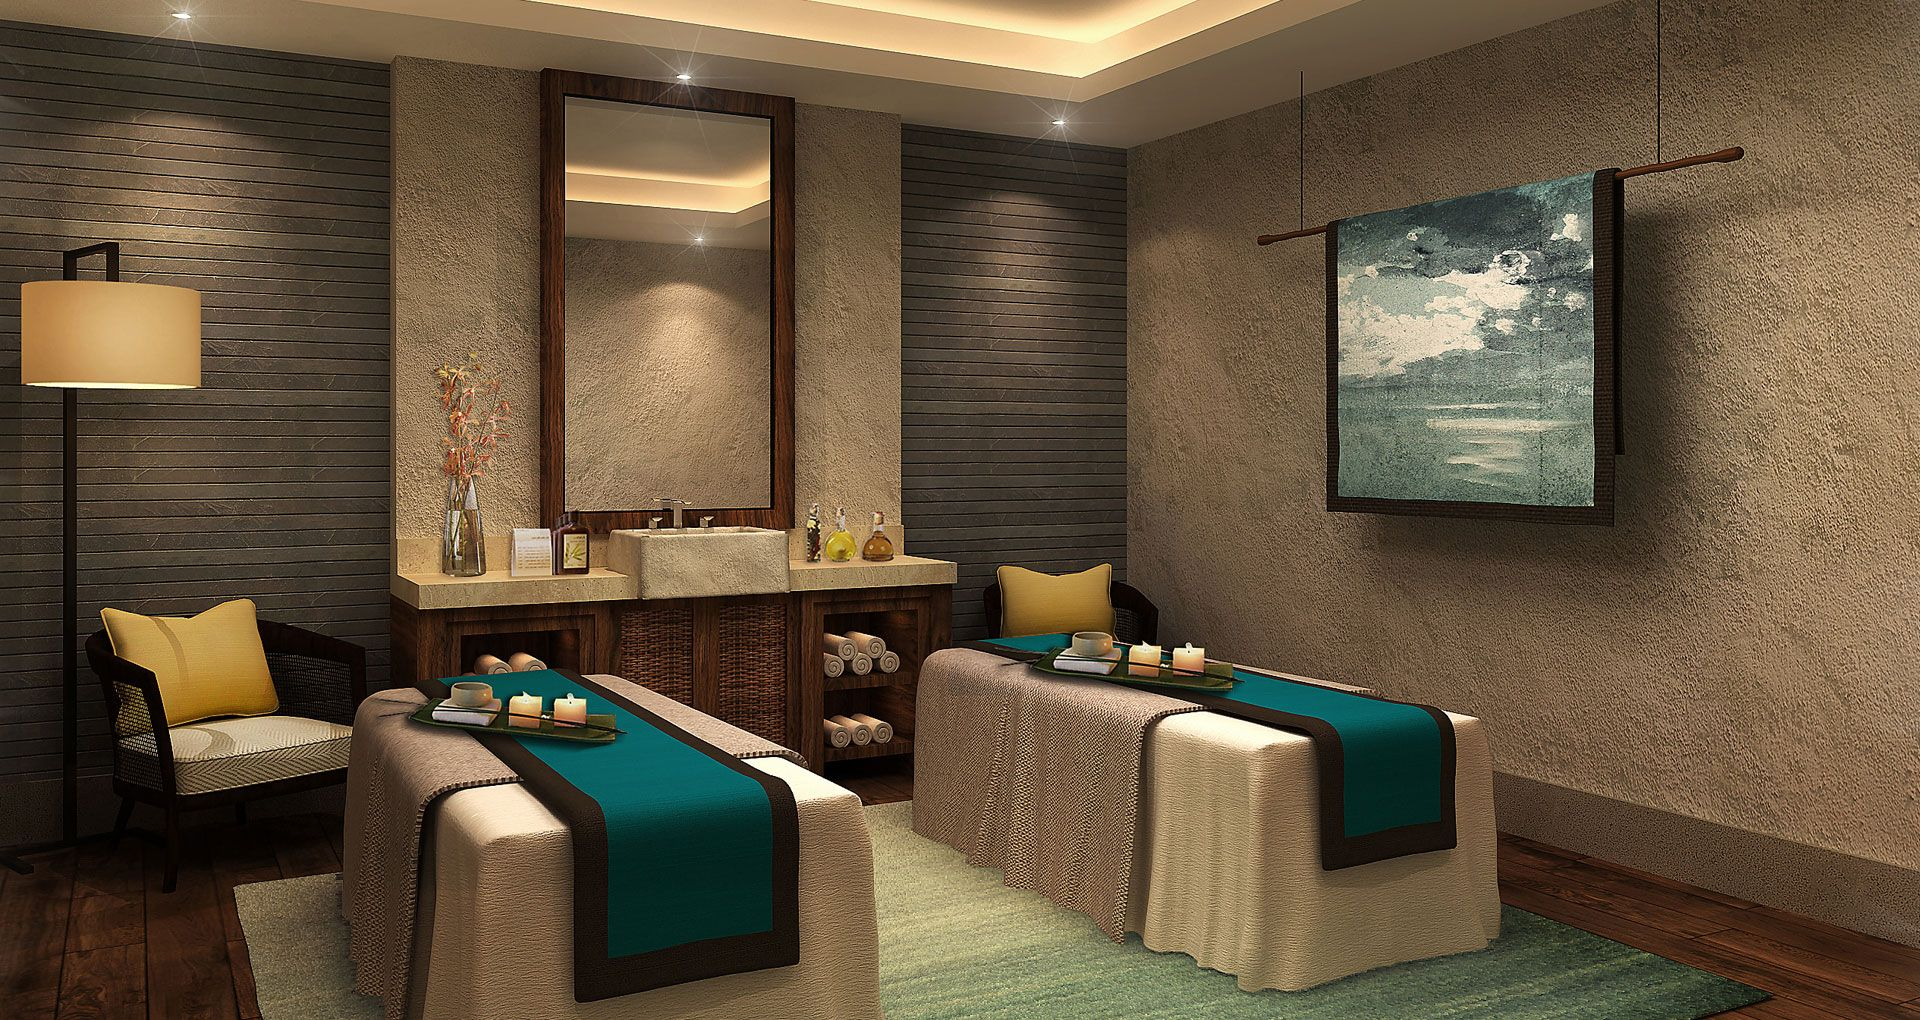 Zhangzhou half moon hill hot spring resort spa interior for Spa treatment room interior design